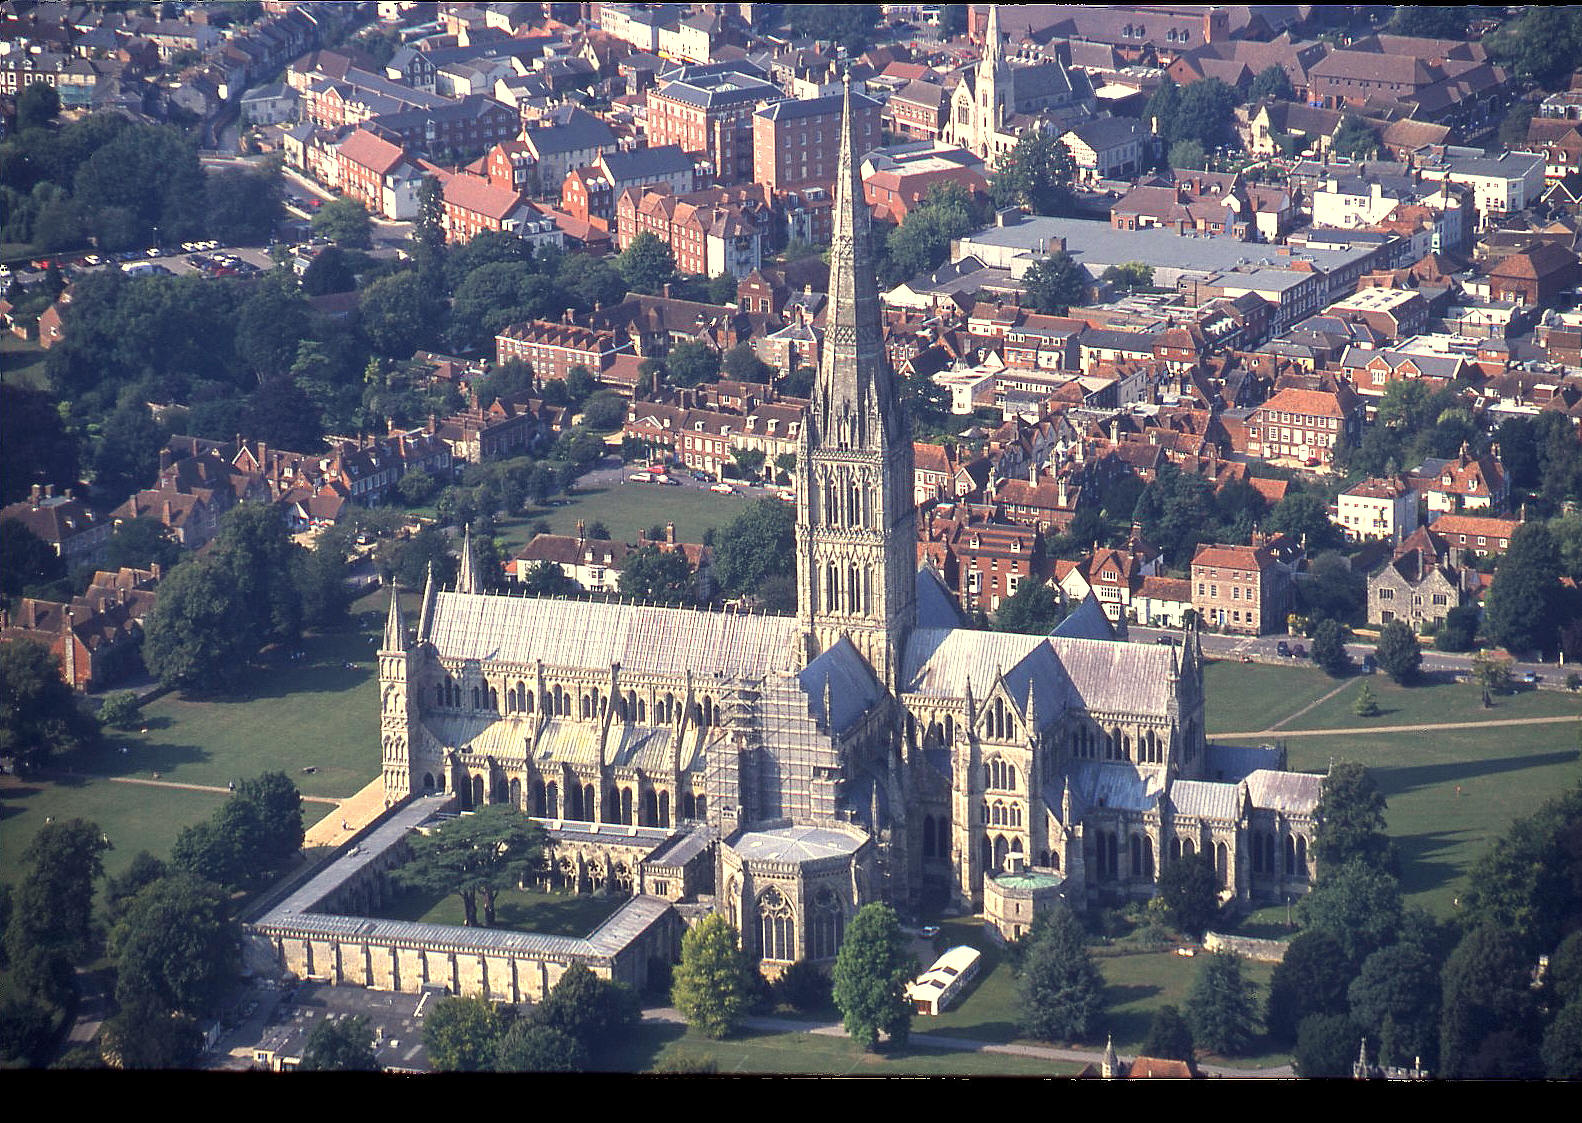 Salisbury cathedral in 2001